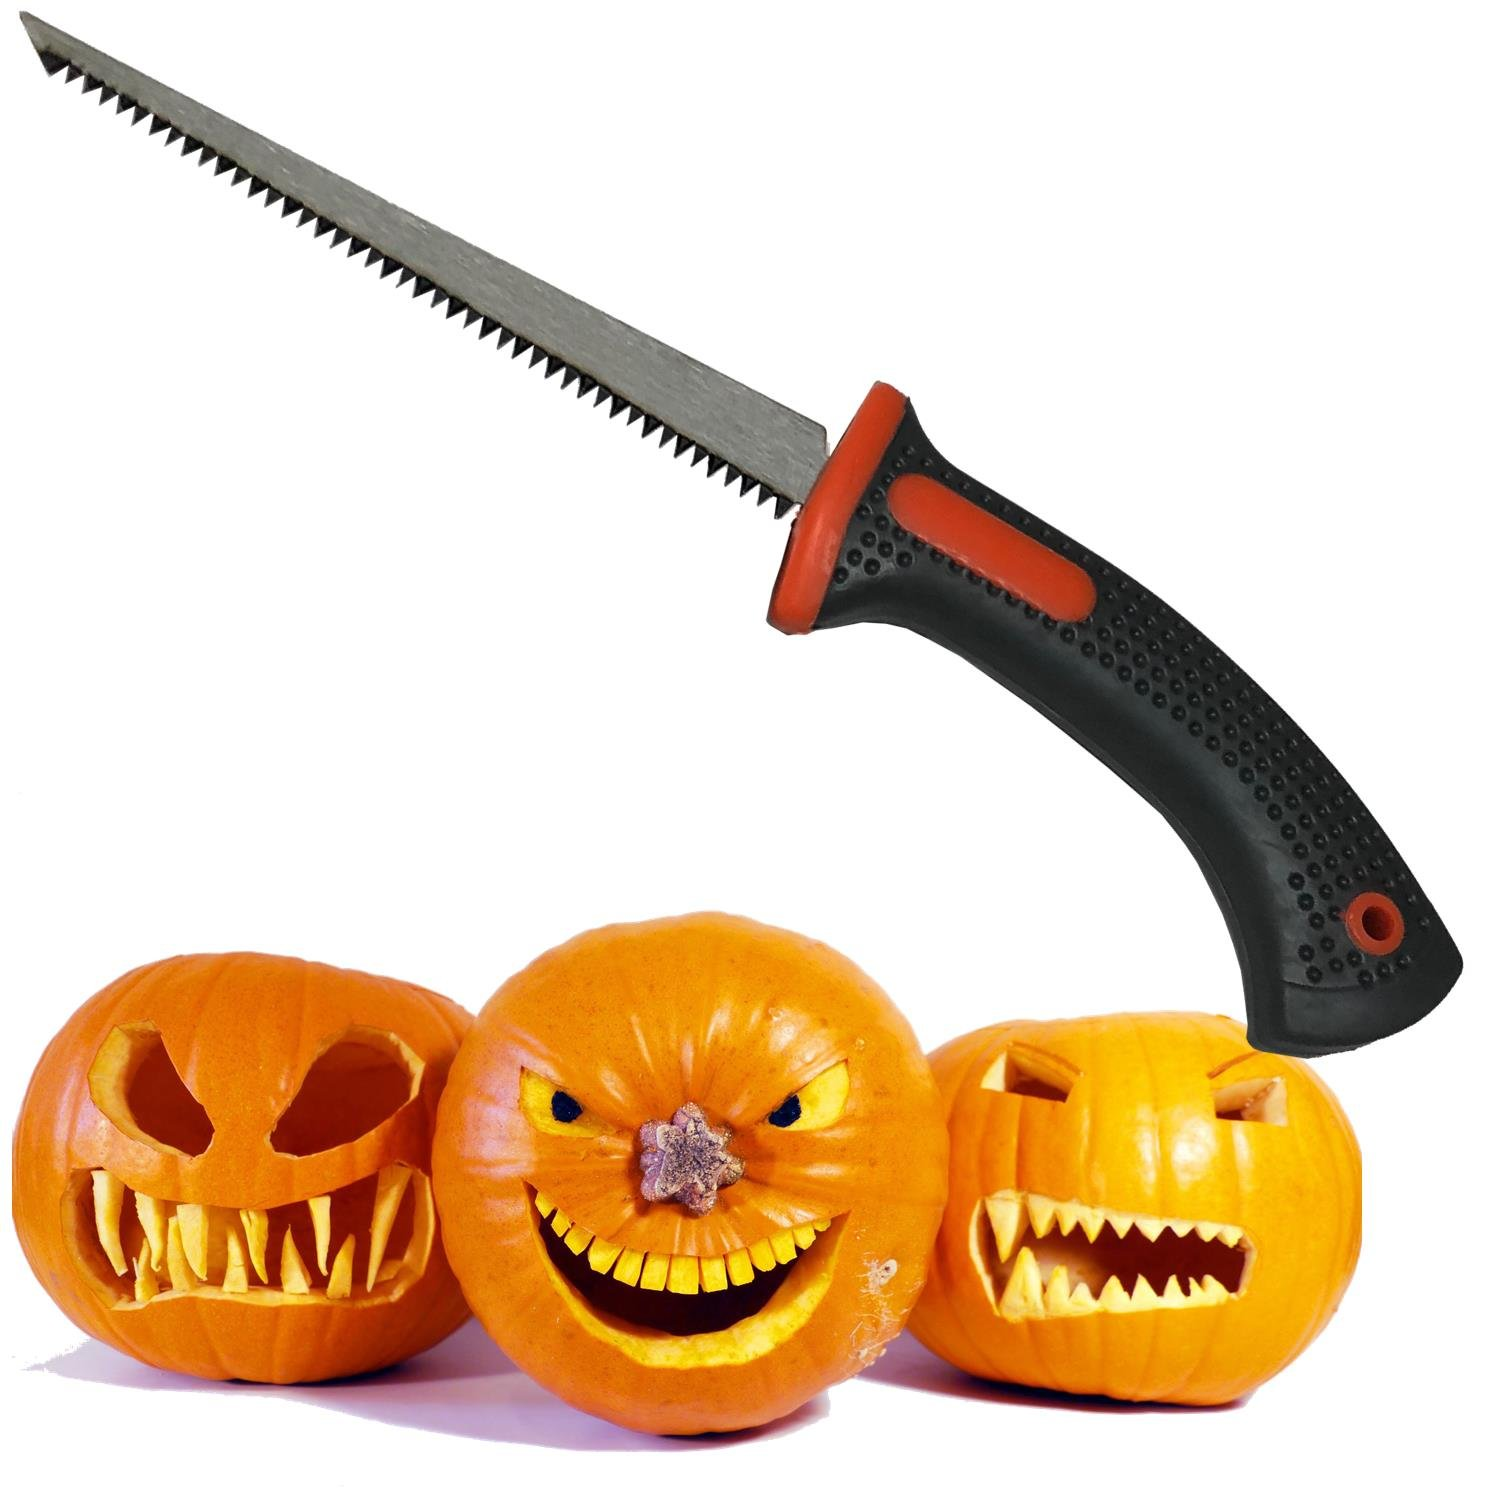 Keyfit Tools PROFESSIONAL Pumpkin Carving Knife, Adult Use Only, Extra Sharp Heat Treated